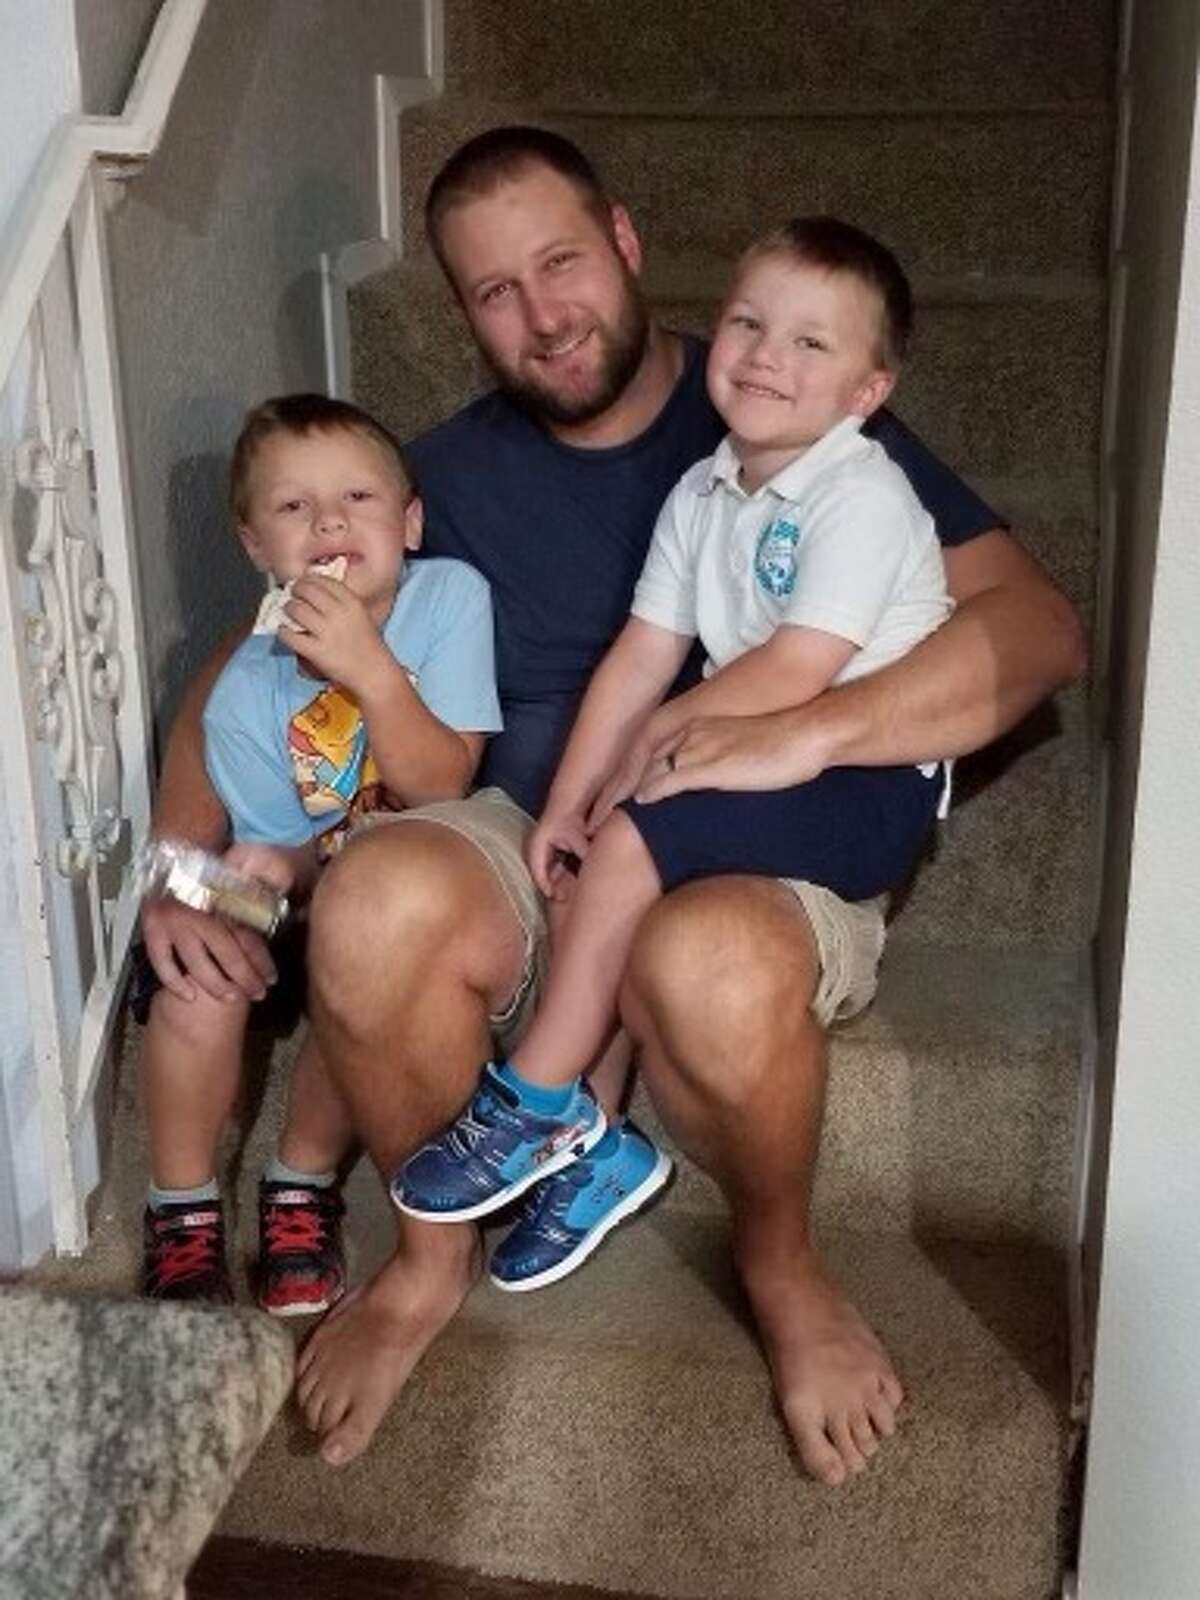 Shawn Kuhleman, 32, died Tuesday while working at the LyondellBasell acetyls unit near La Porte.